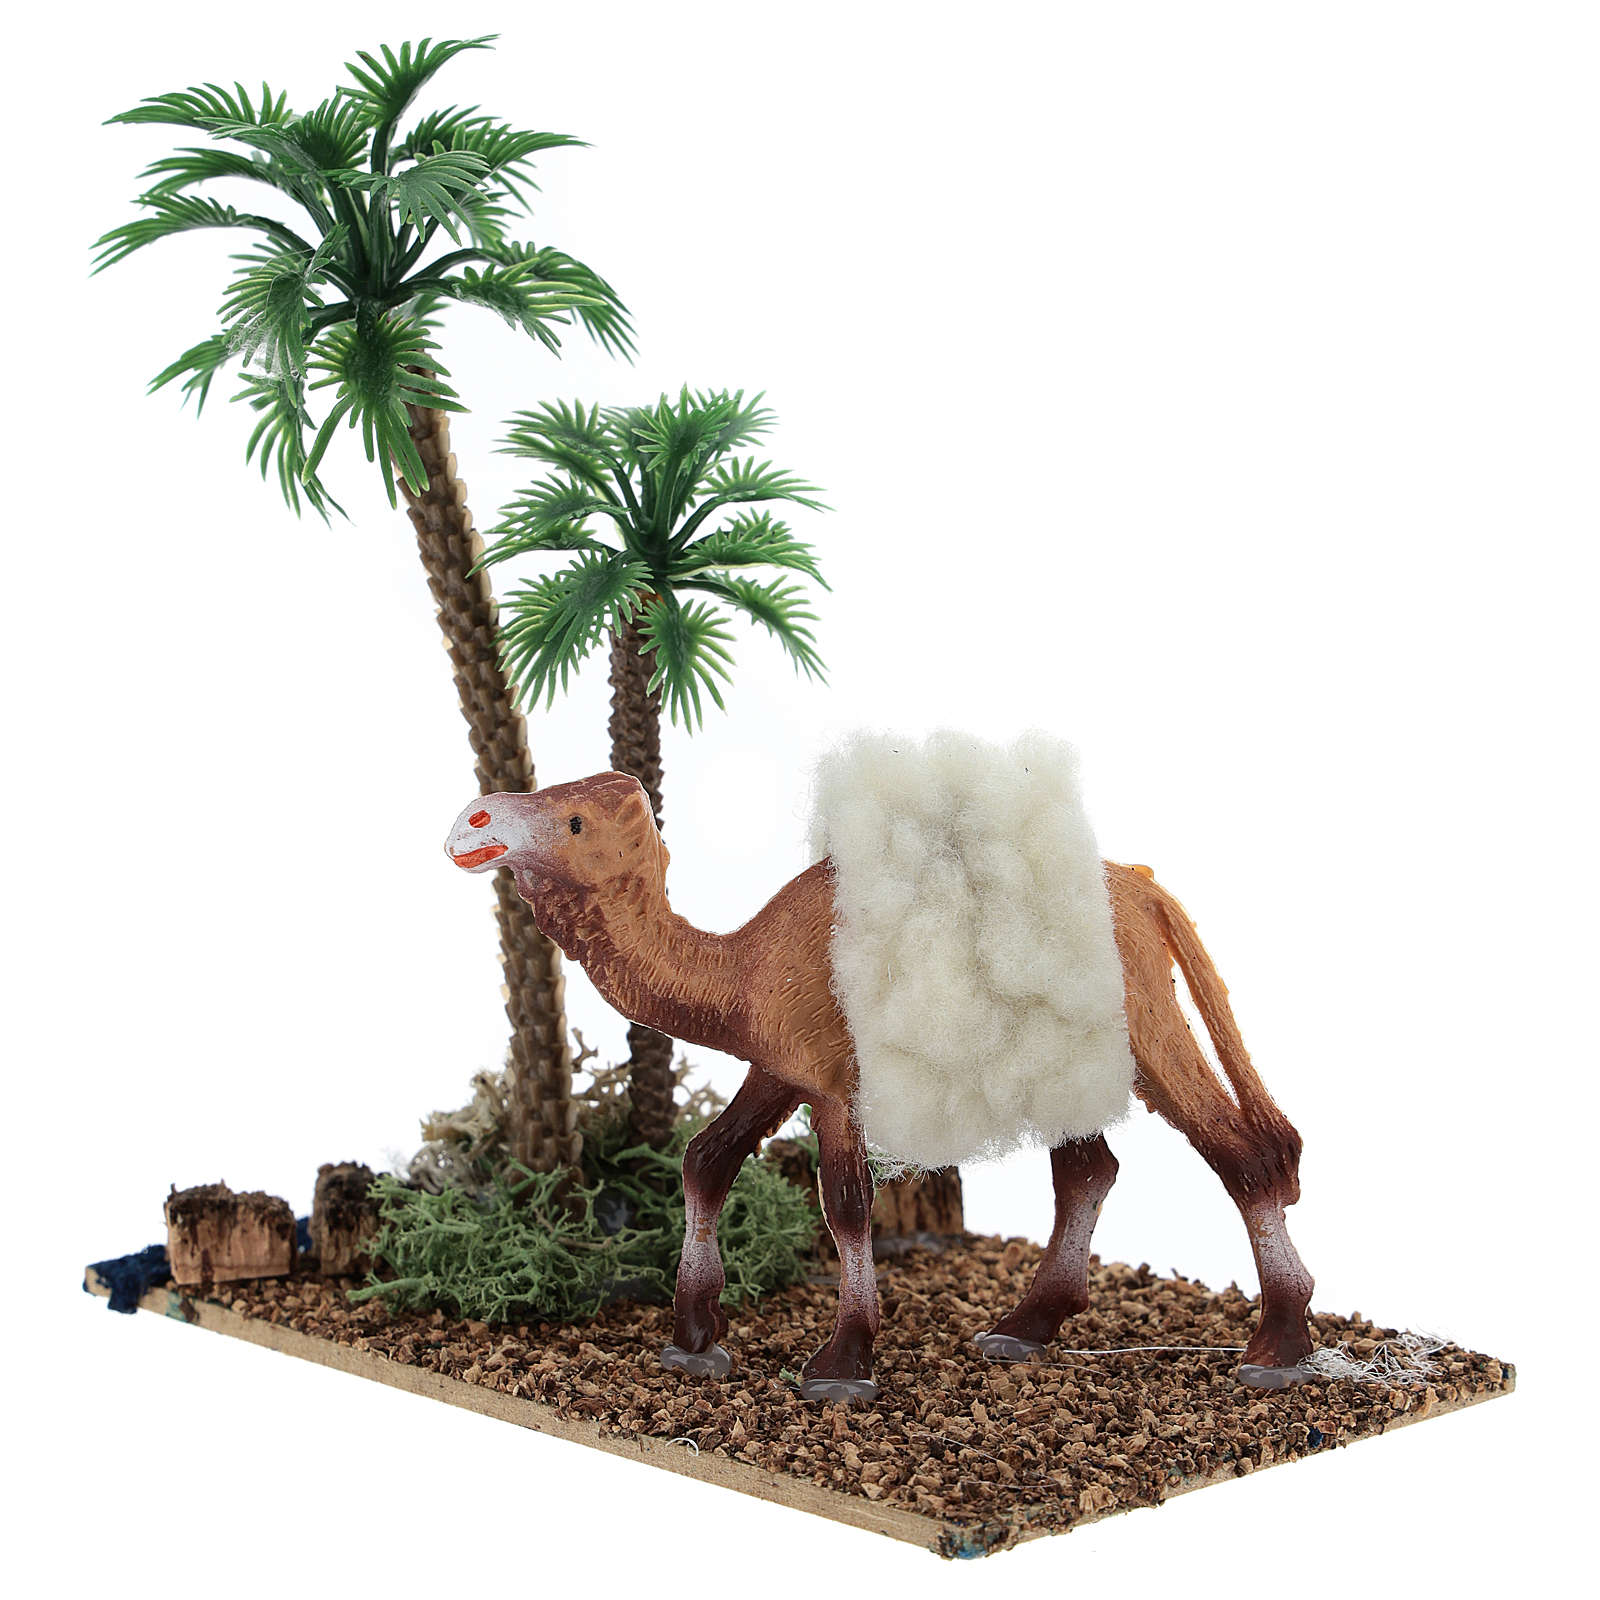 Oasis with palm trees and camel for Nativity scene 10x10x7 cm 3